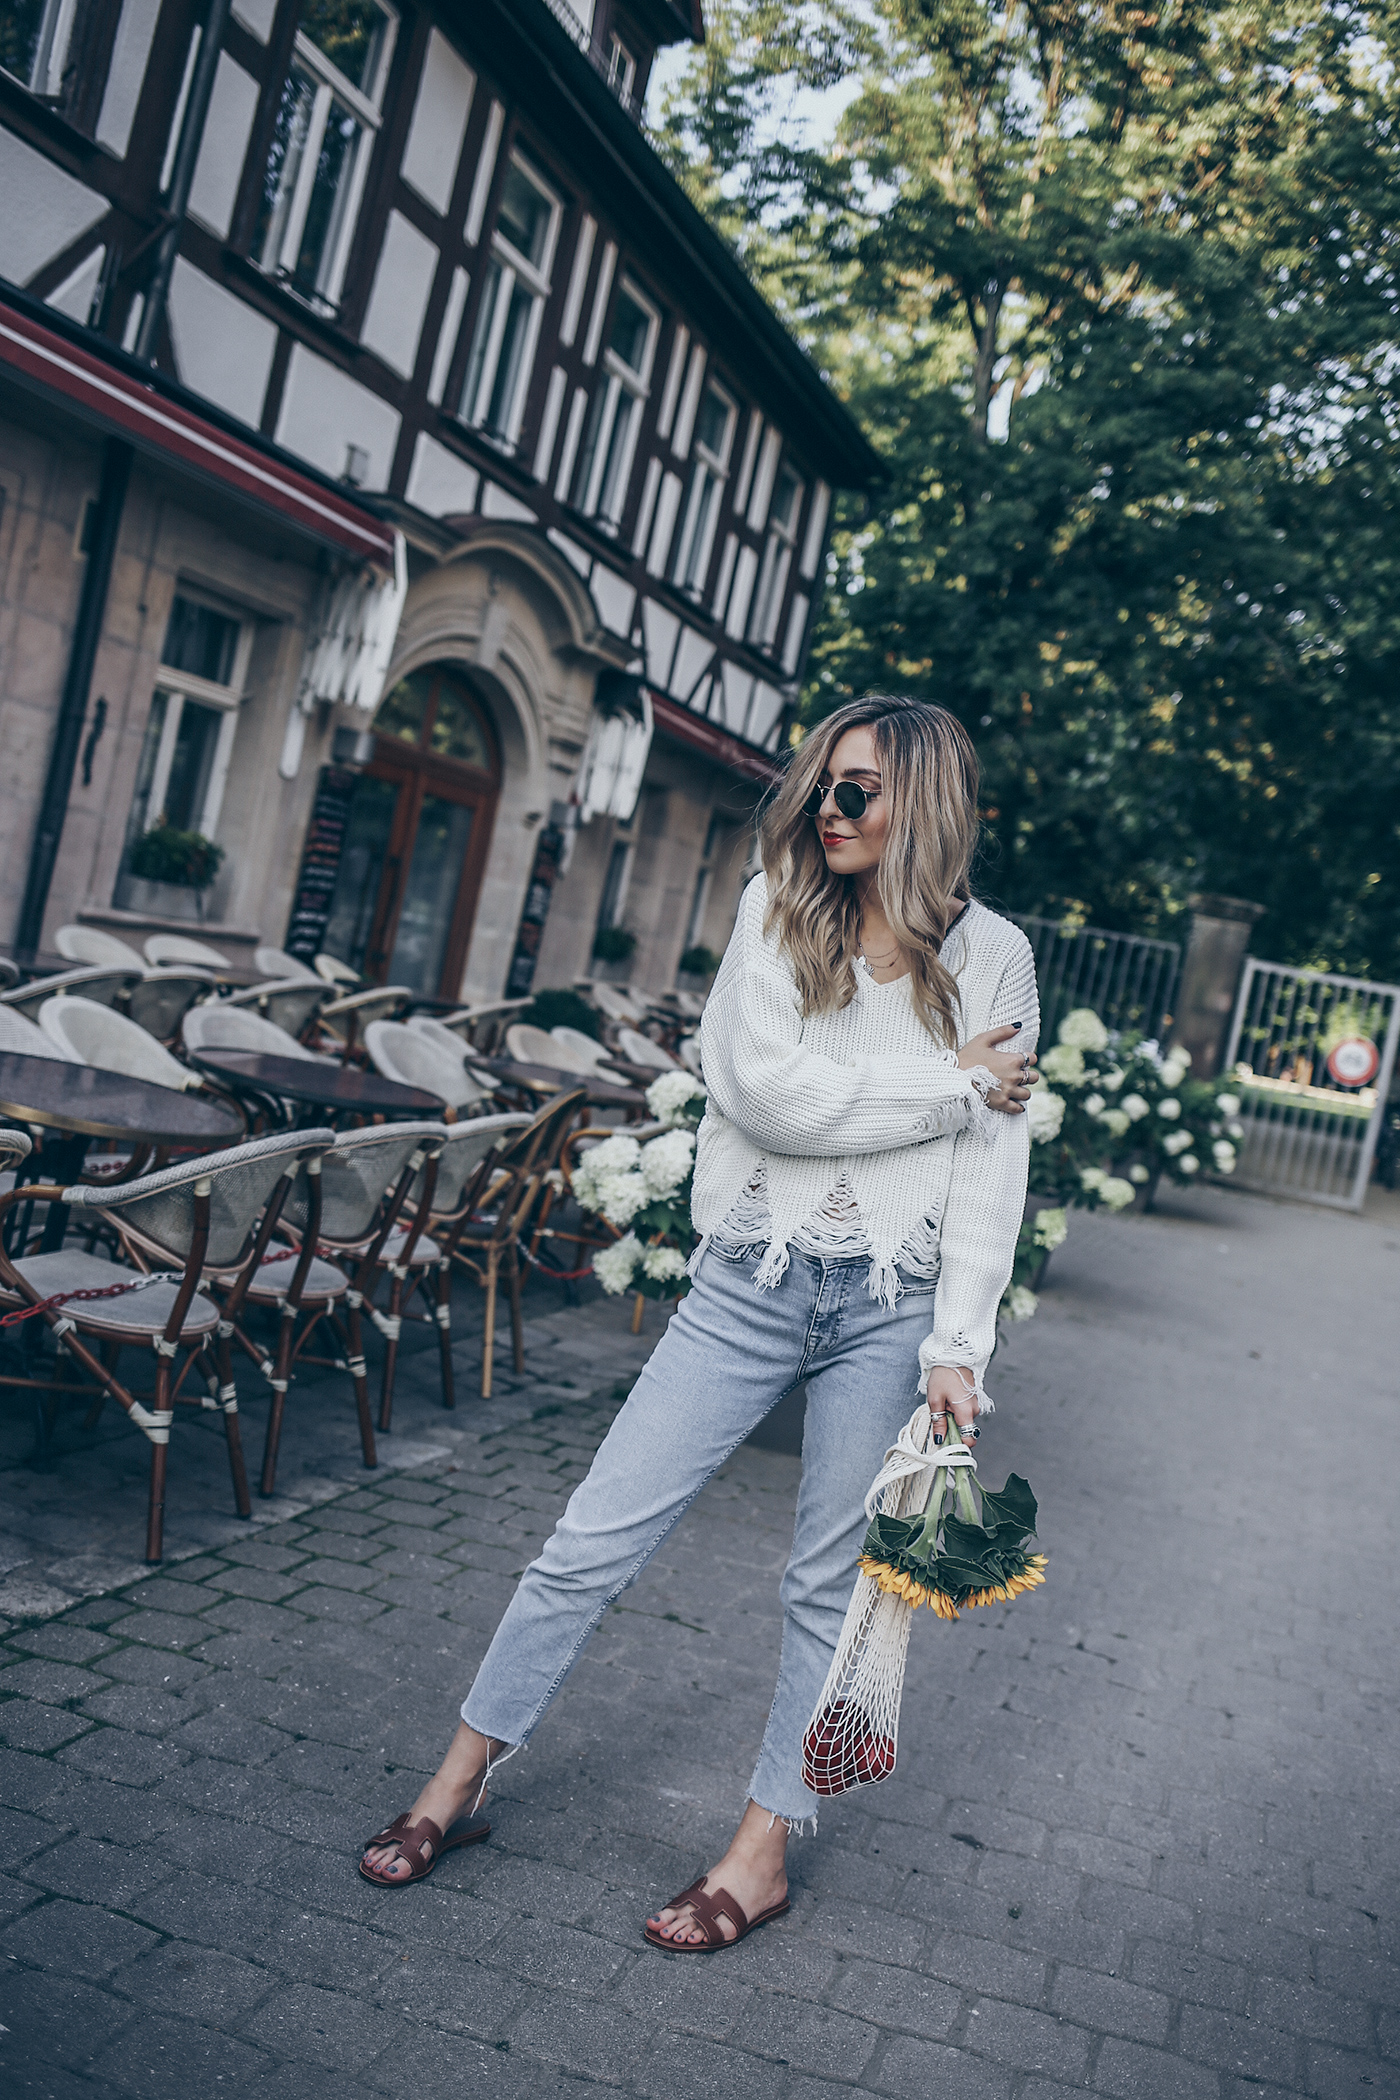 Hermes Oran Sandals Outfit Net Bag Summer Trend 2017 Fashion Blog Street Style Germany Nürnberg Erlangen